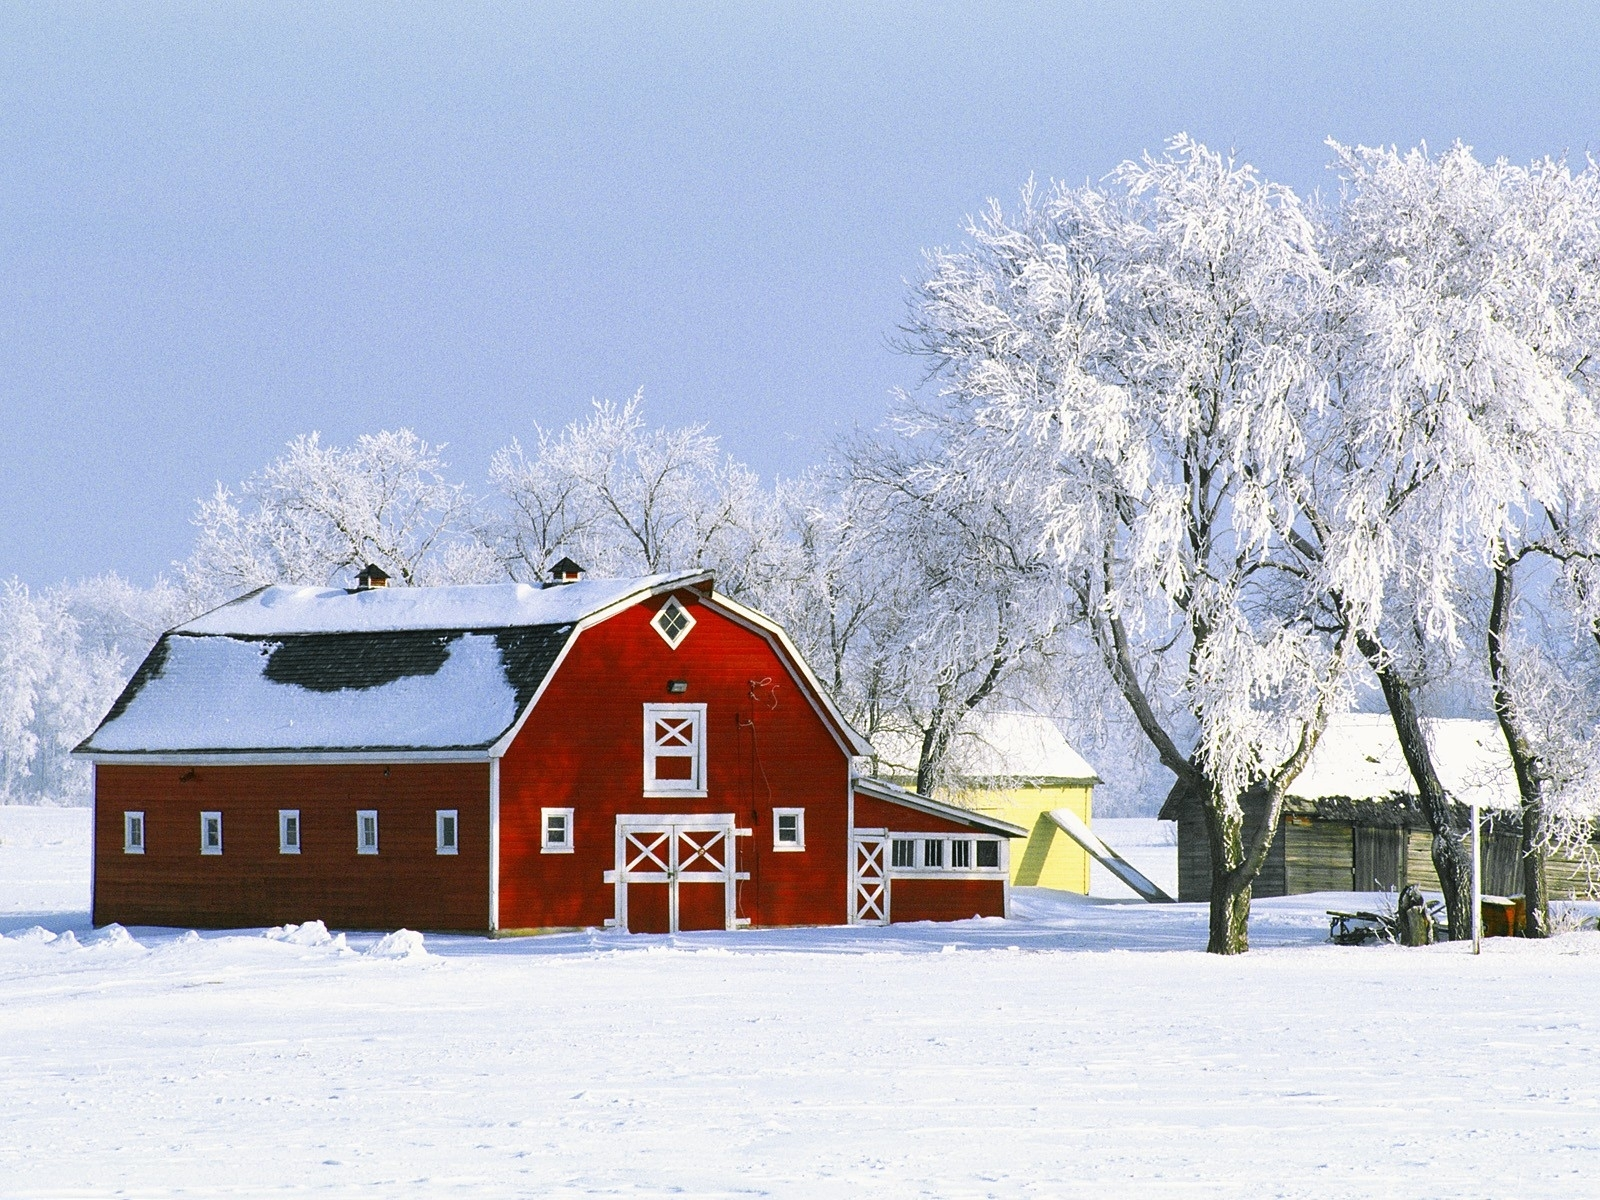 43+] Winter Farm Desktop Wallpaper on WallpaperSafari.